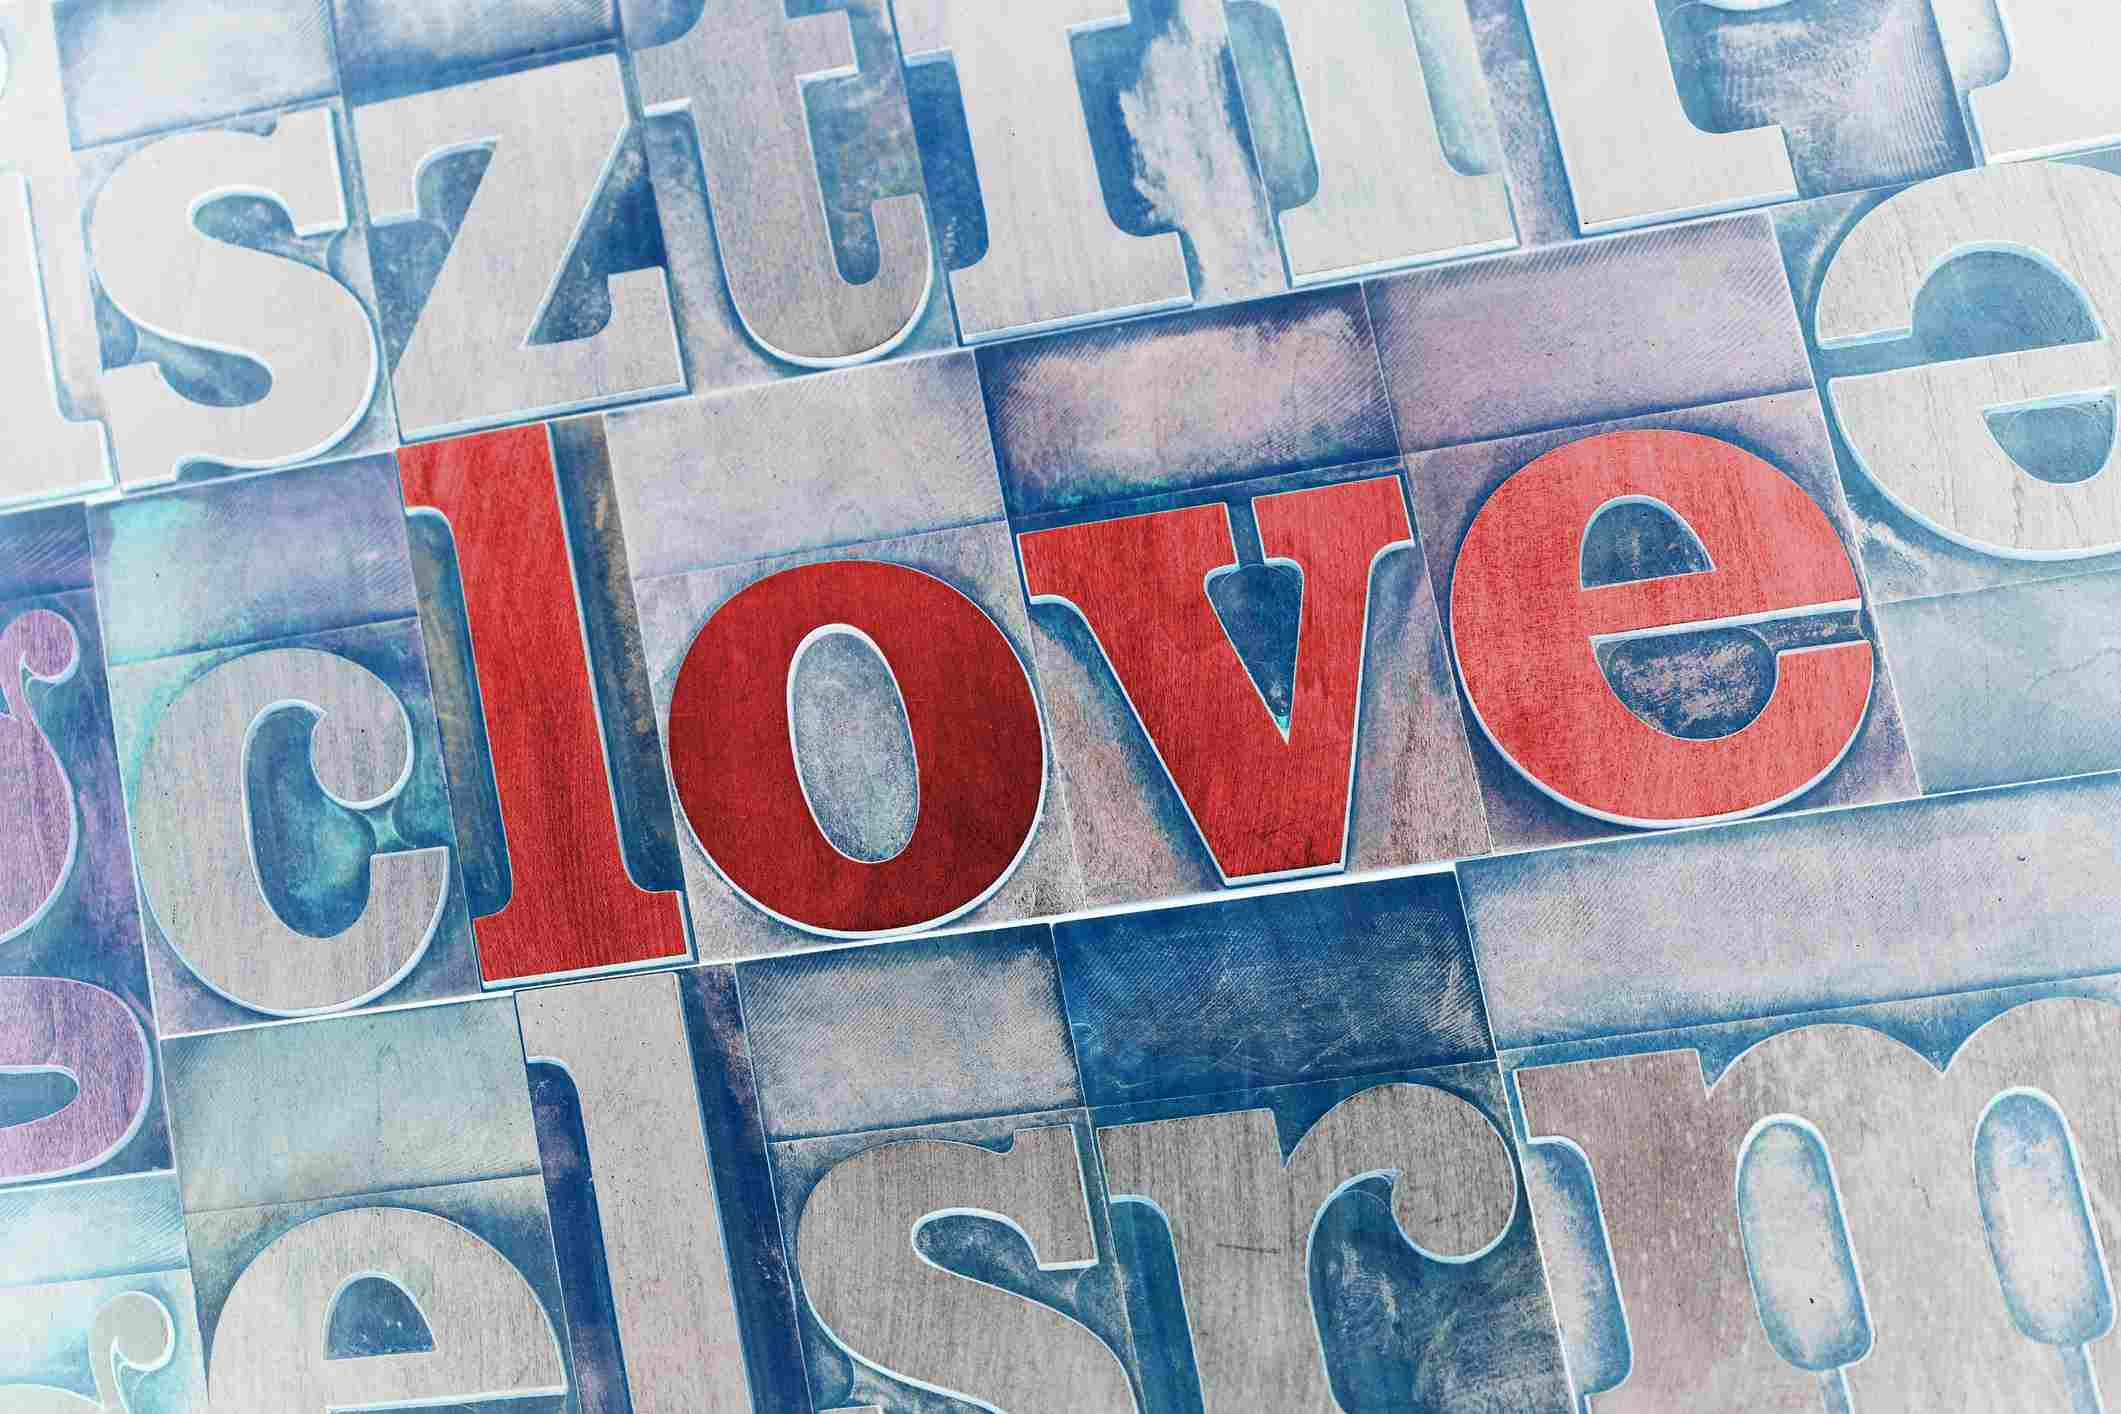 The word 'love' in red print blocks